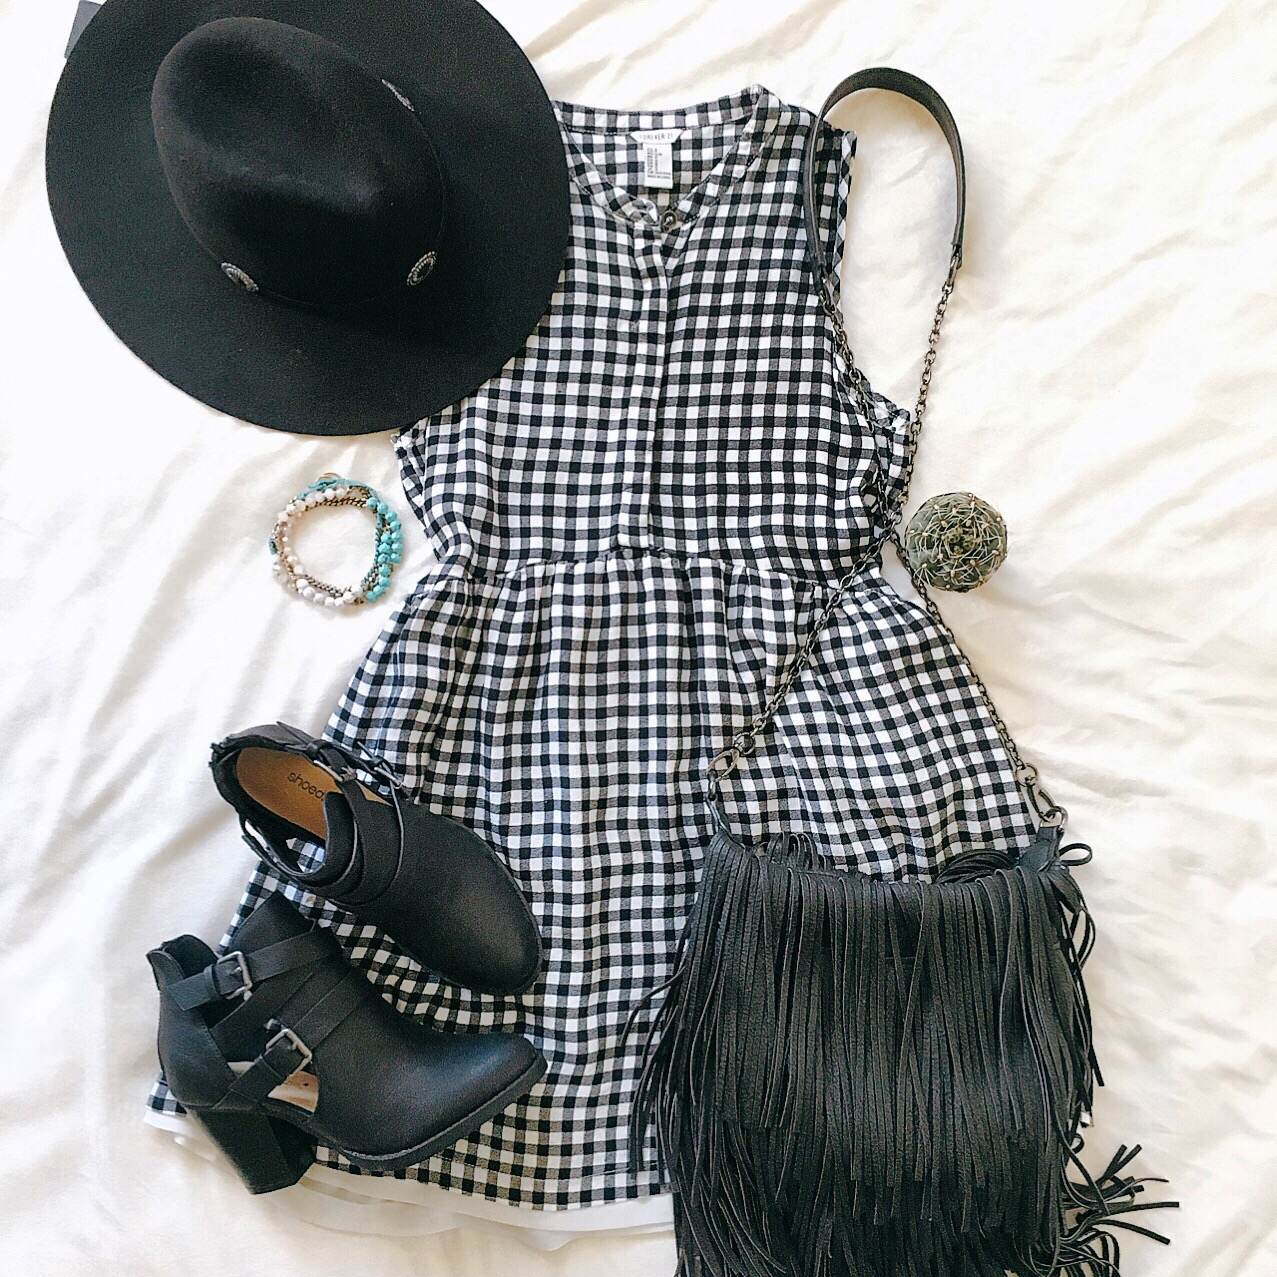 outfit of the day graceful in gingham. Black Bedroom Furniture Sets. Home Design Ideas